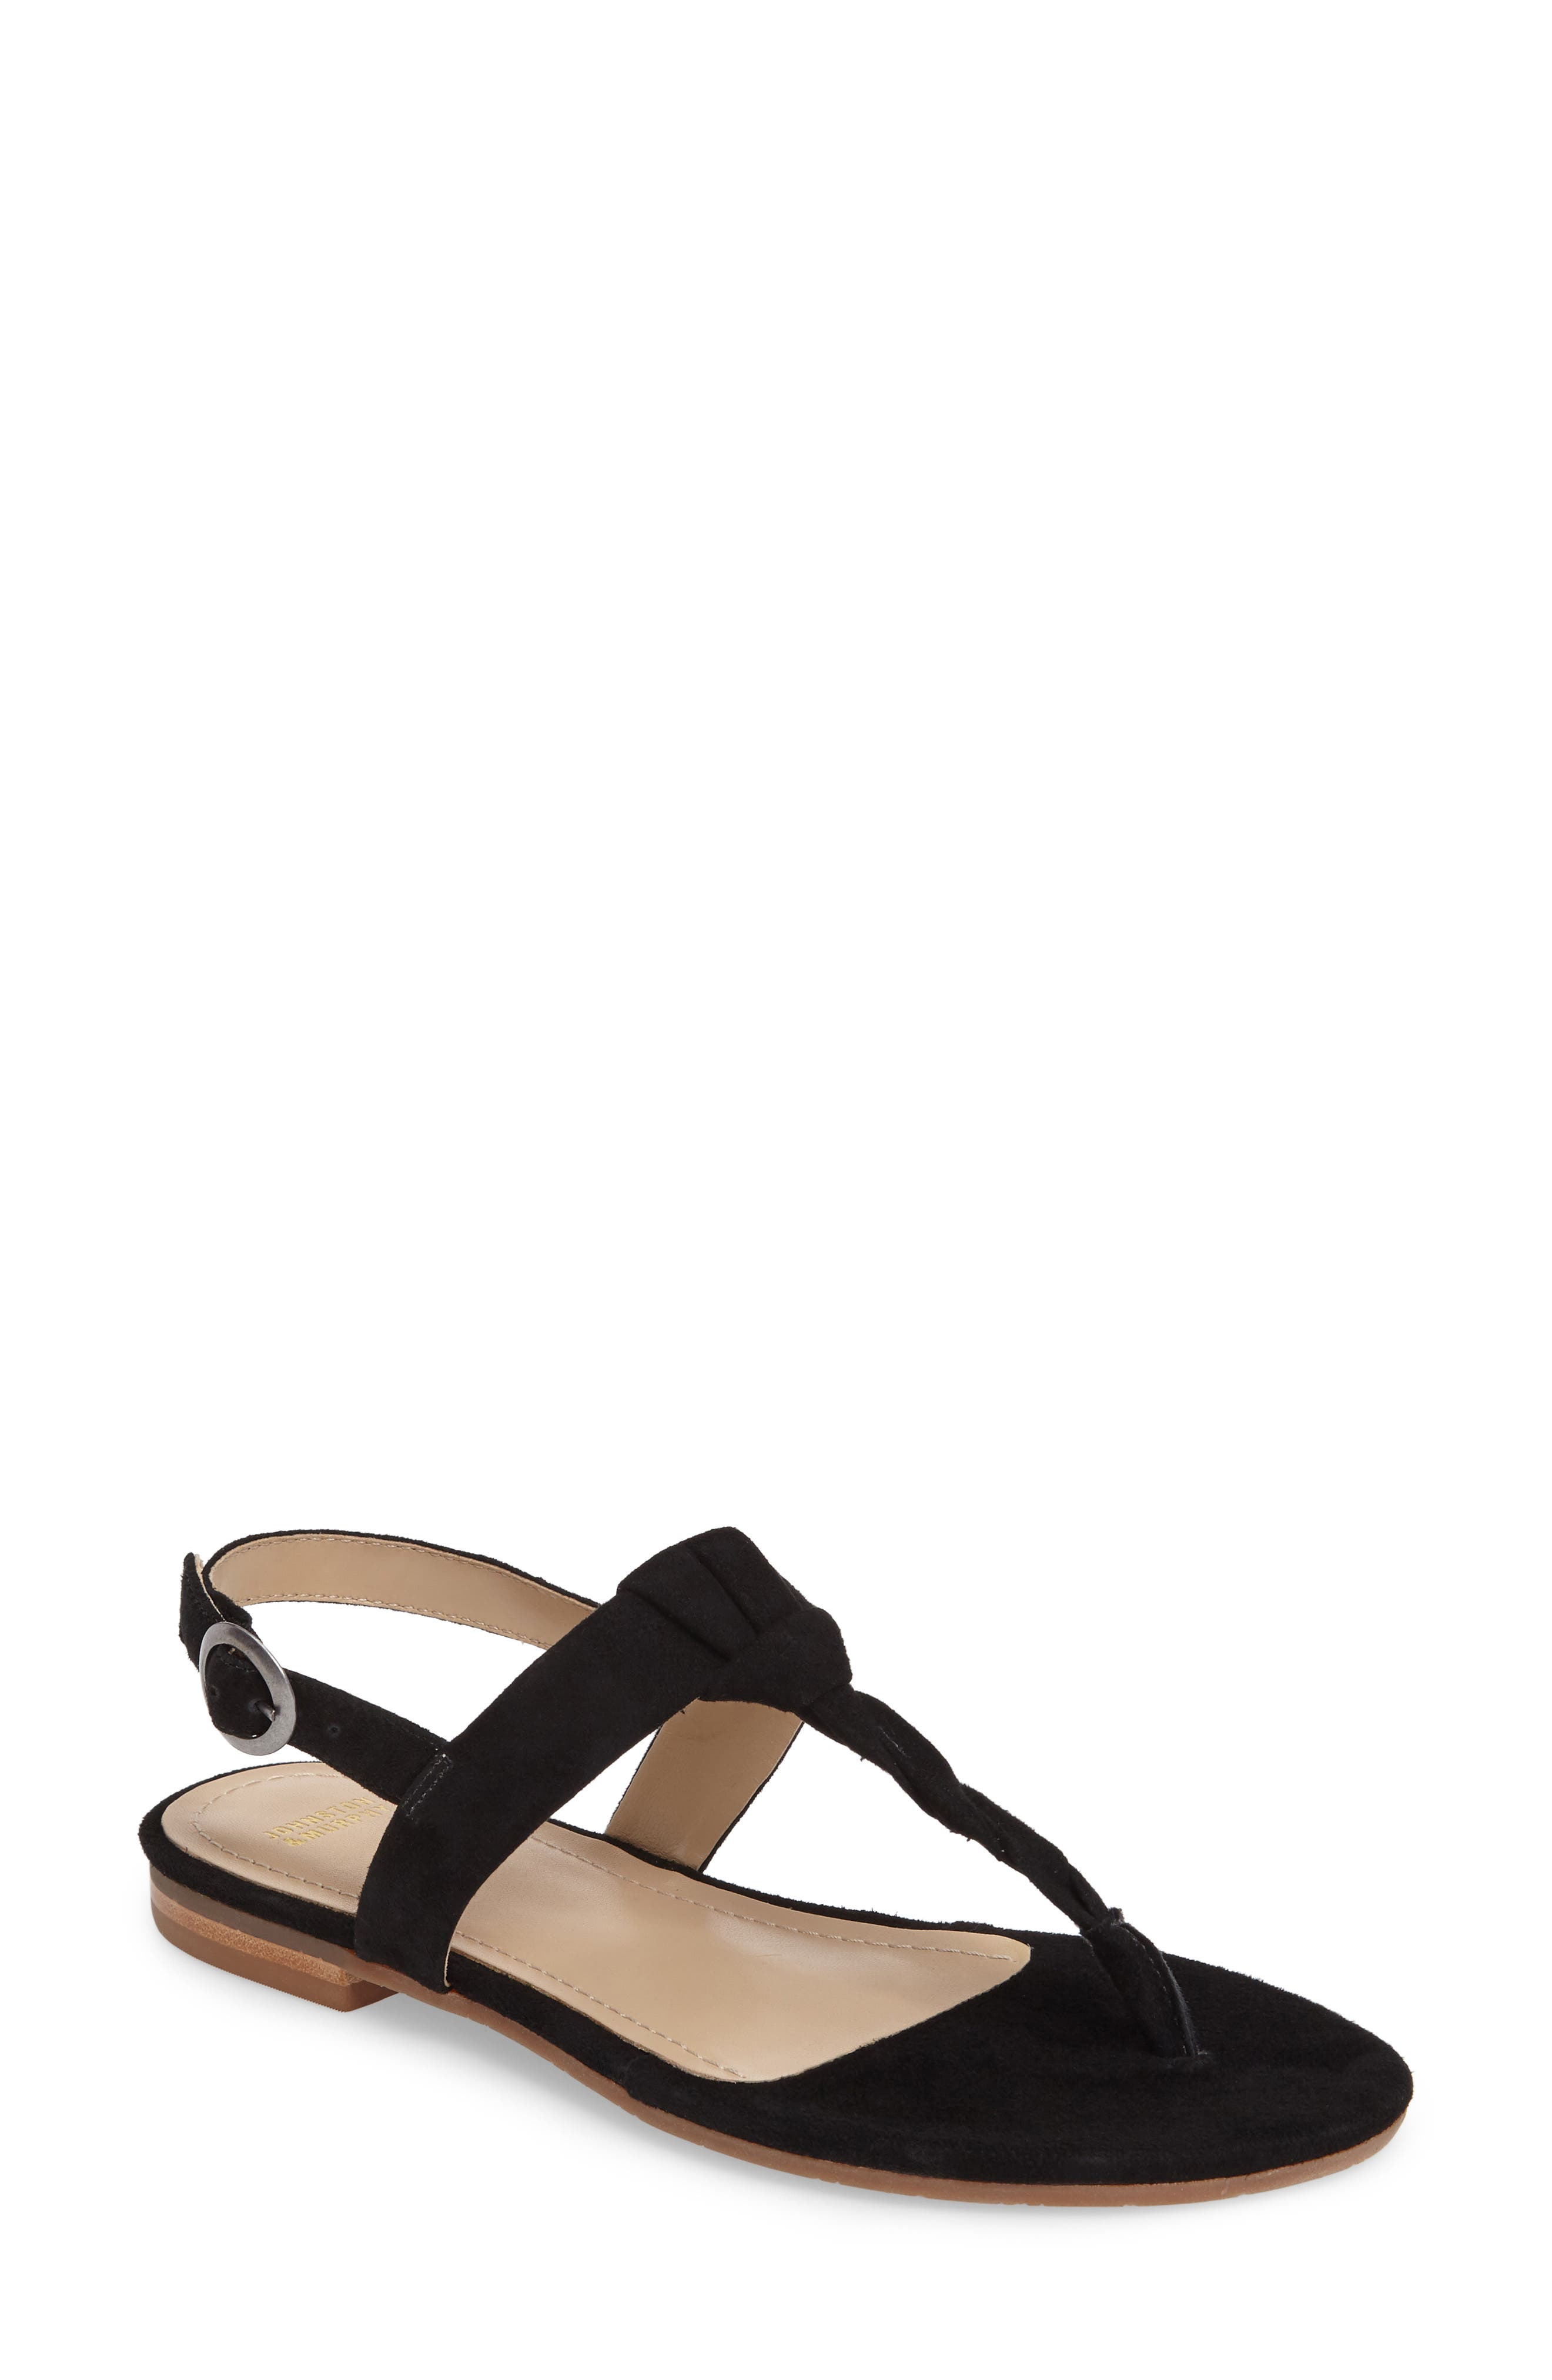 Holly Twisted T-Strap Sandal,                         Main,                         color, 001